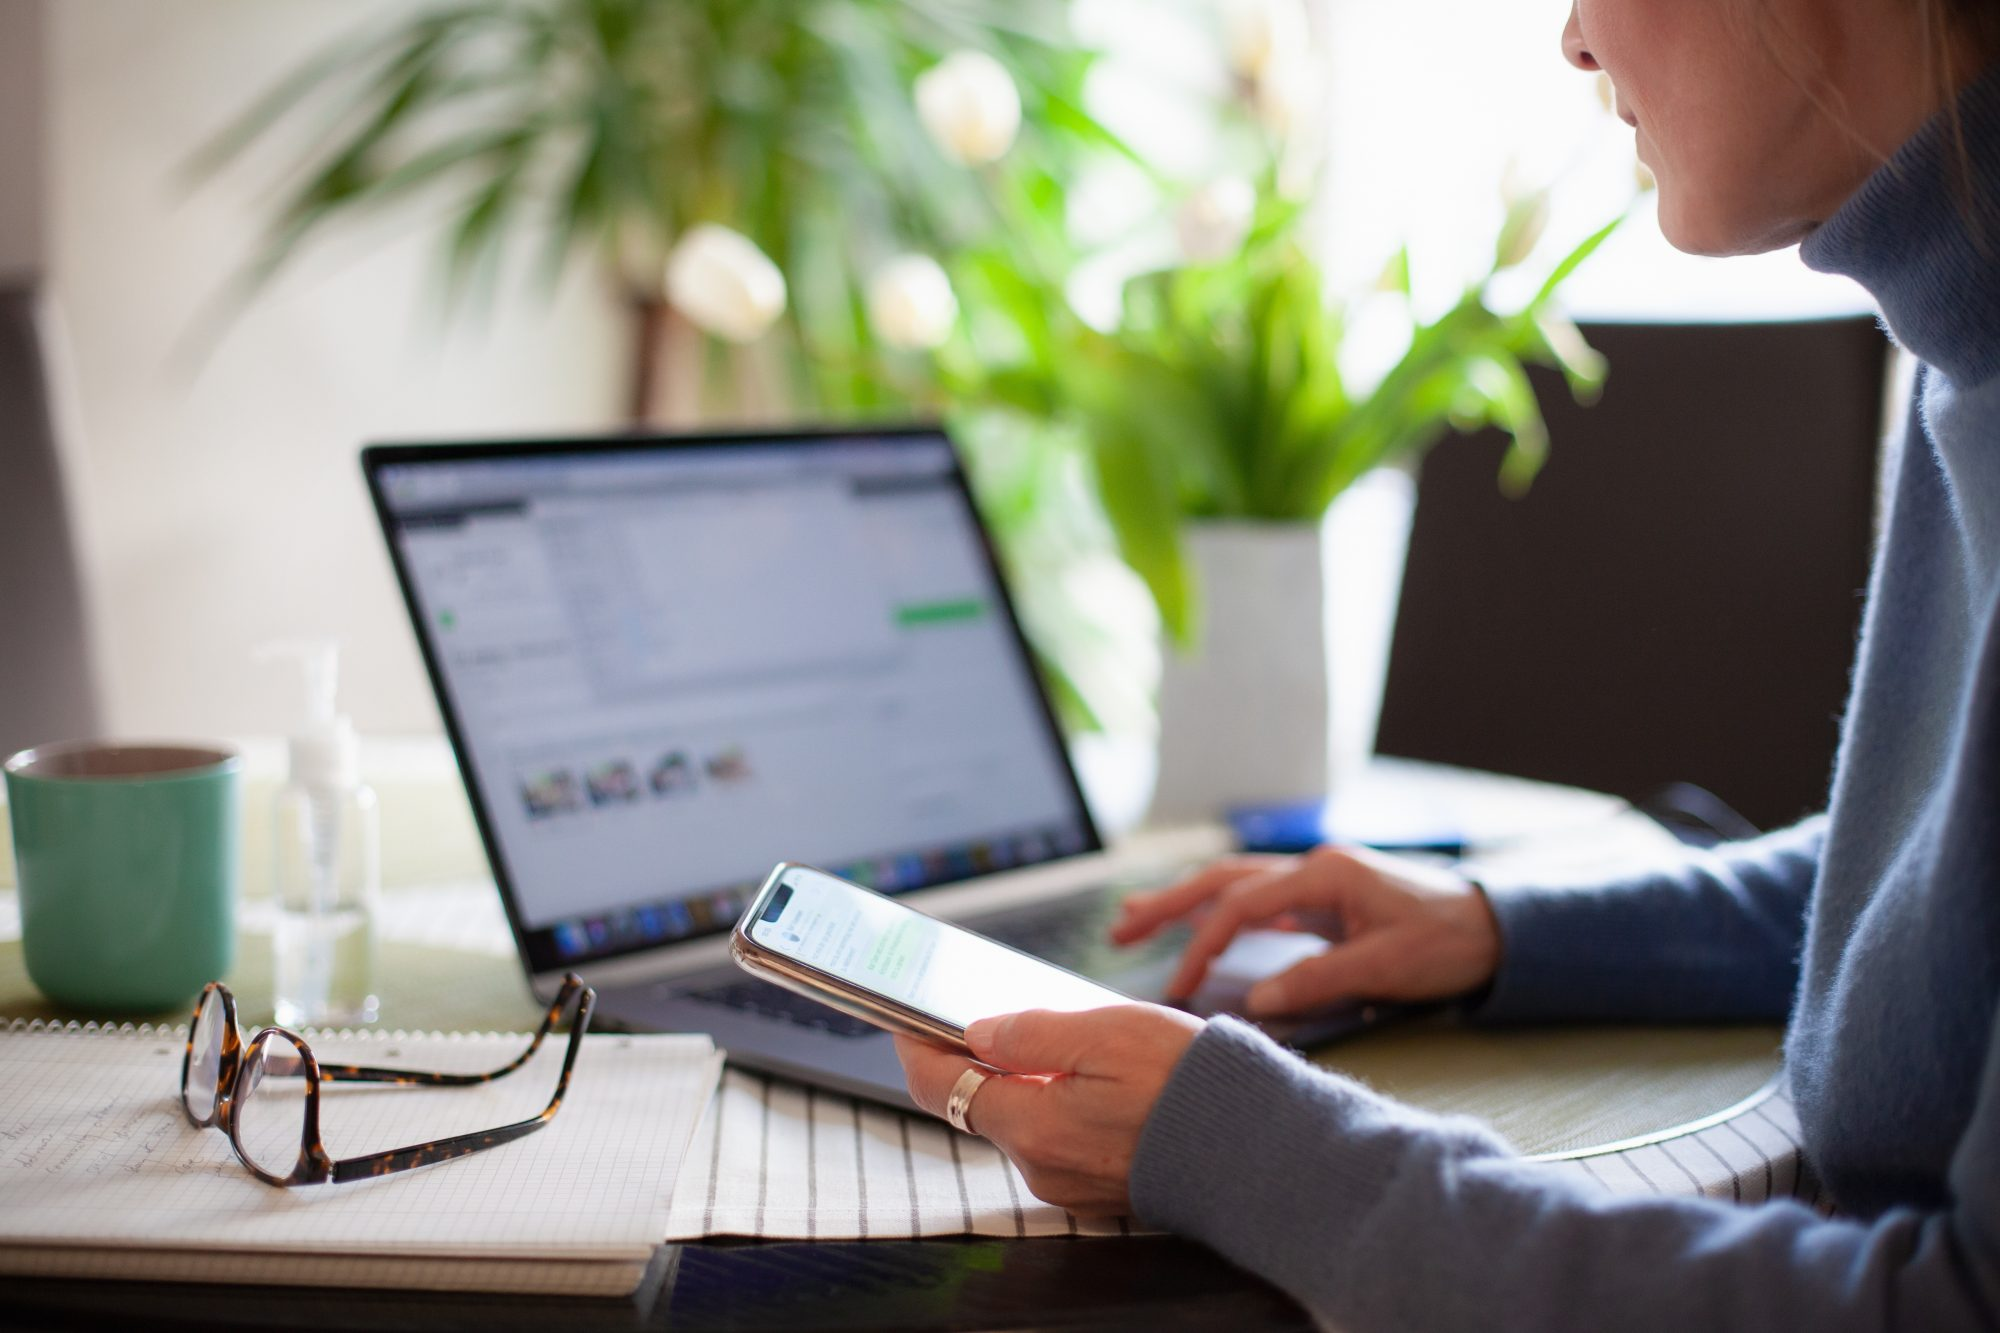 Woman working from home using laptop computer while reading text message on mobile phone